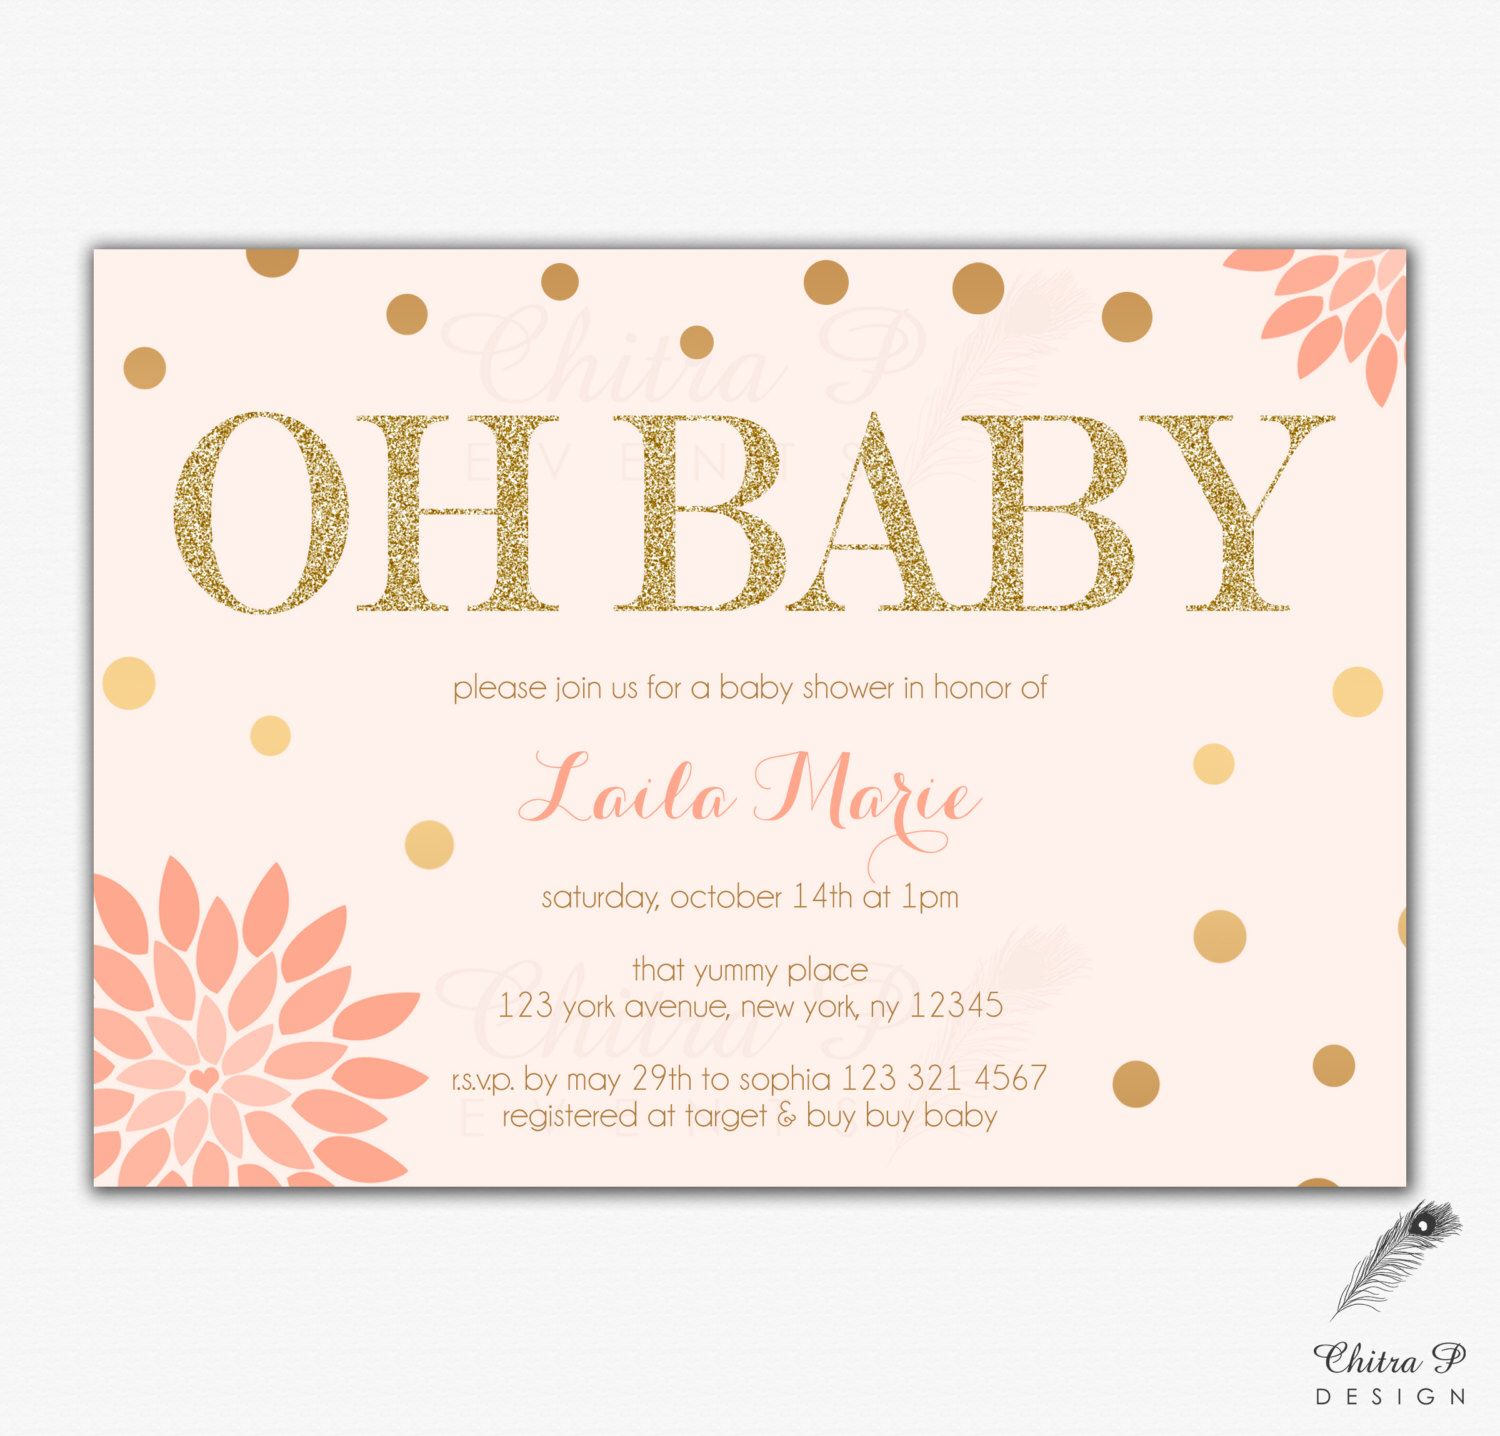 Blush Pink & Gold Baby Shower Invitations - Printed, Glitter Floral ...